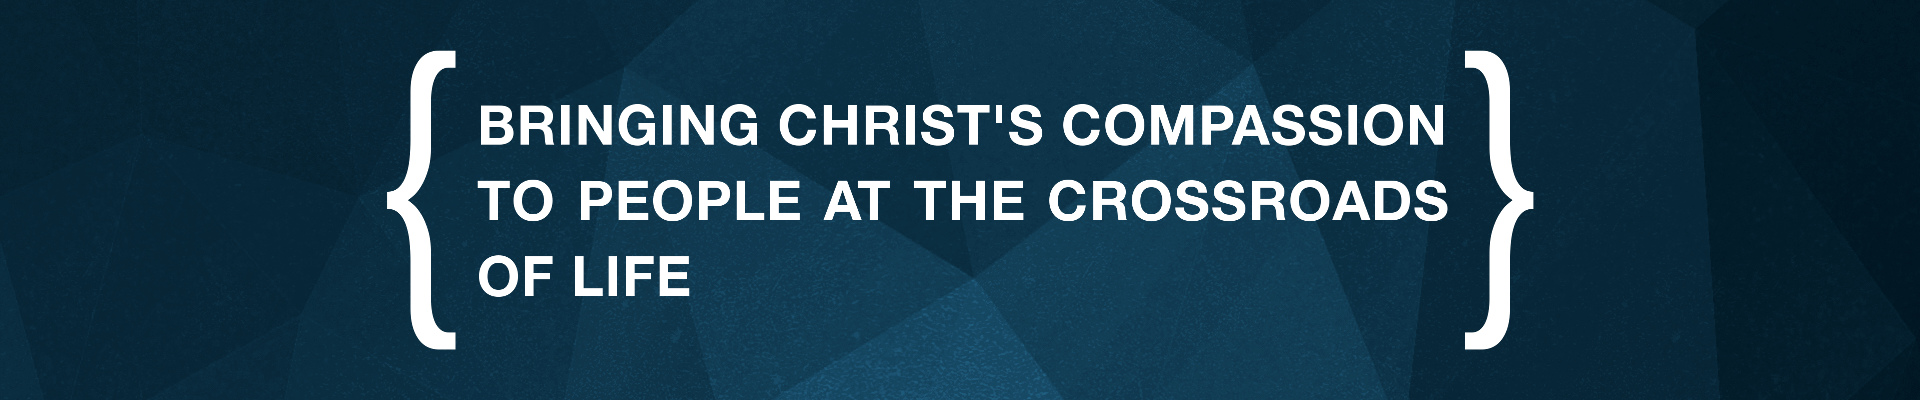 Bringing Christ's compassion to people at the crossroads of life.